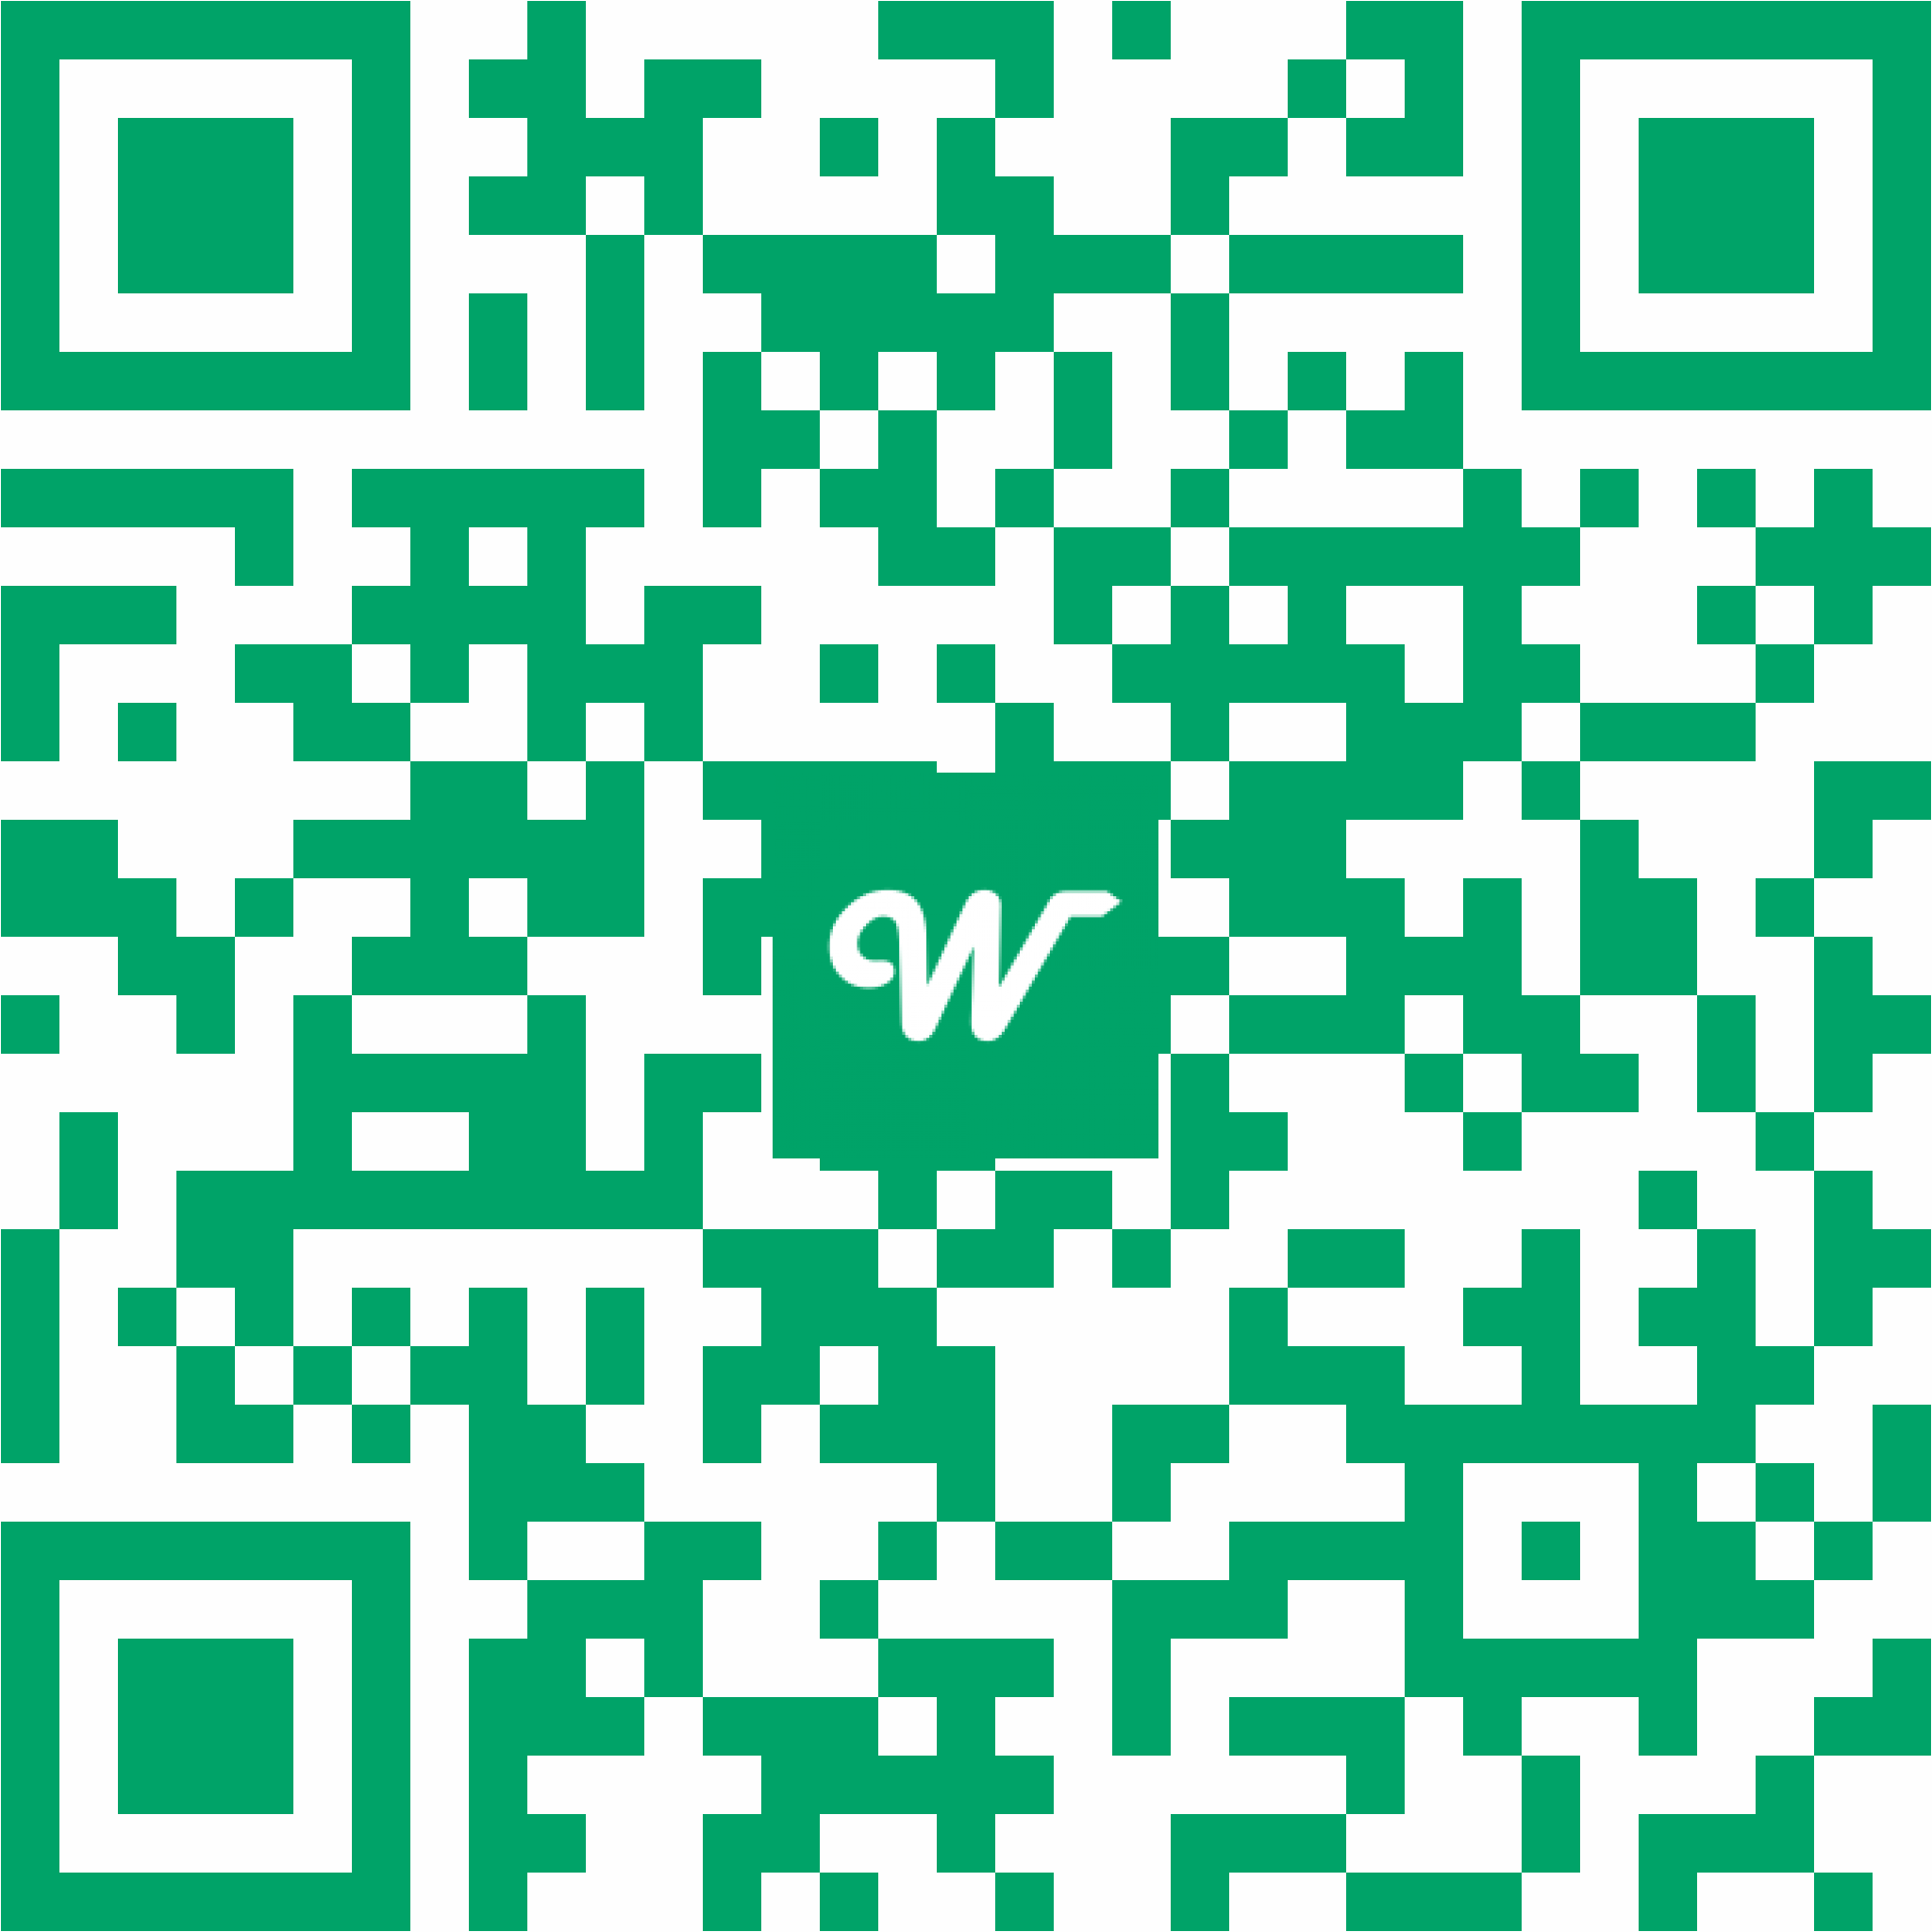 Printable QR code for Swortex